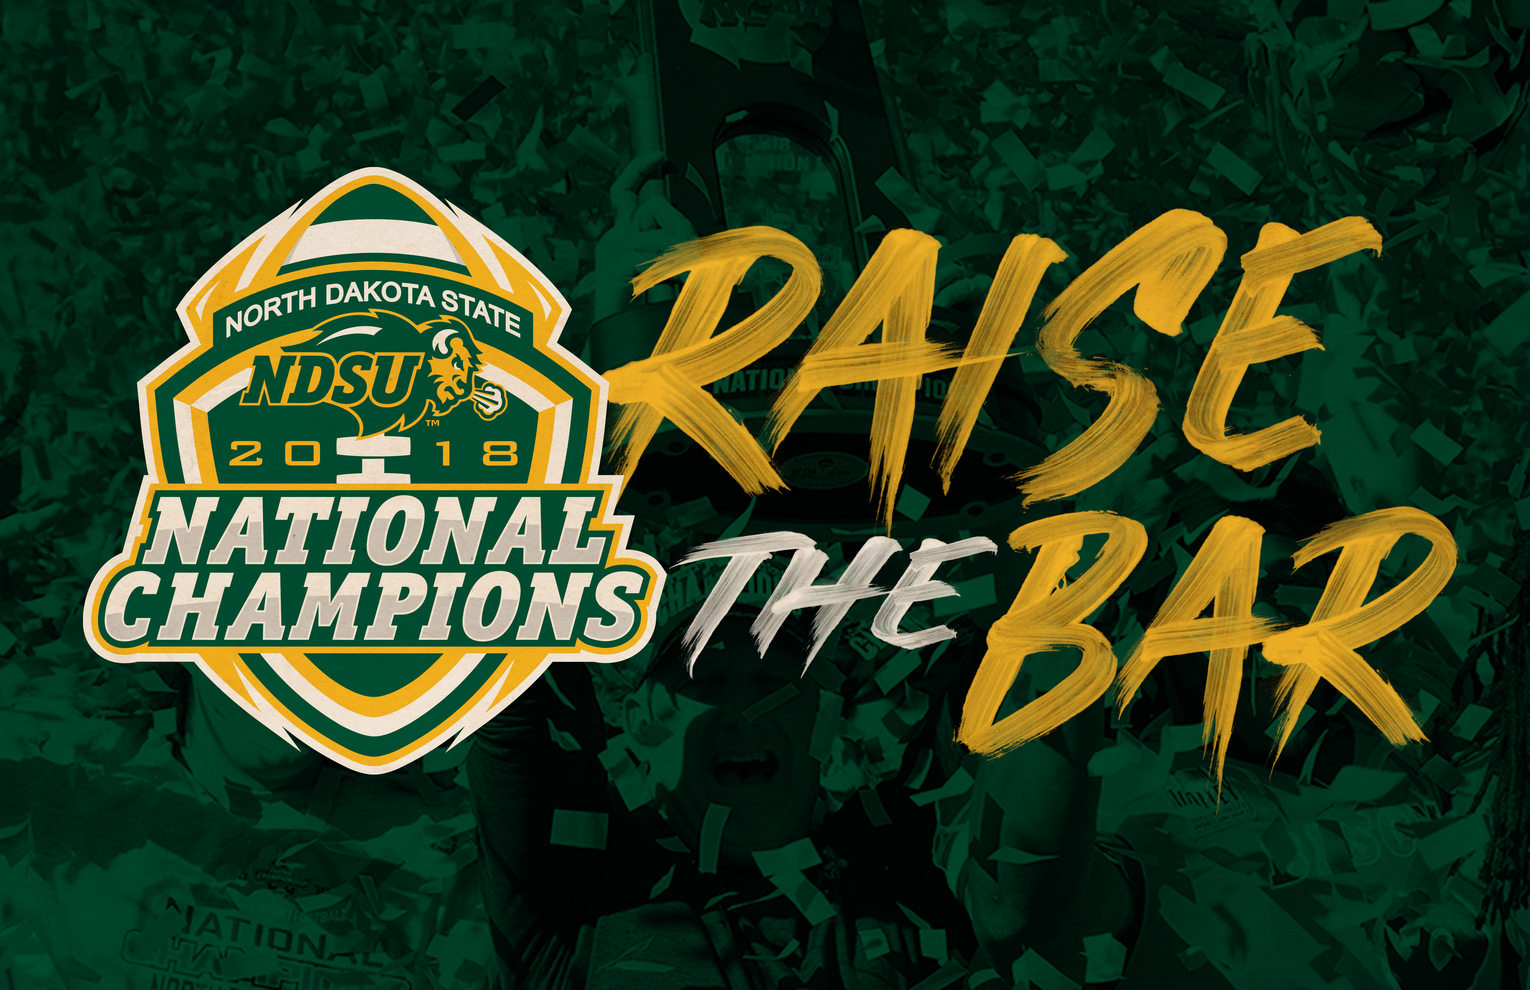 Ndsu Champ With Images Marketing Software National Championship National